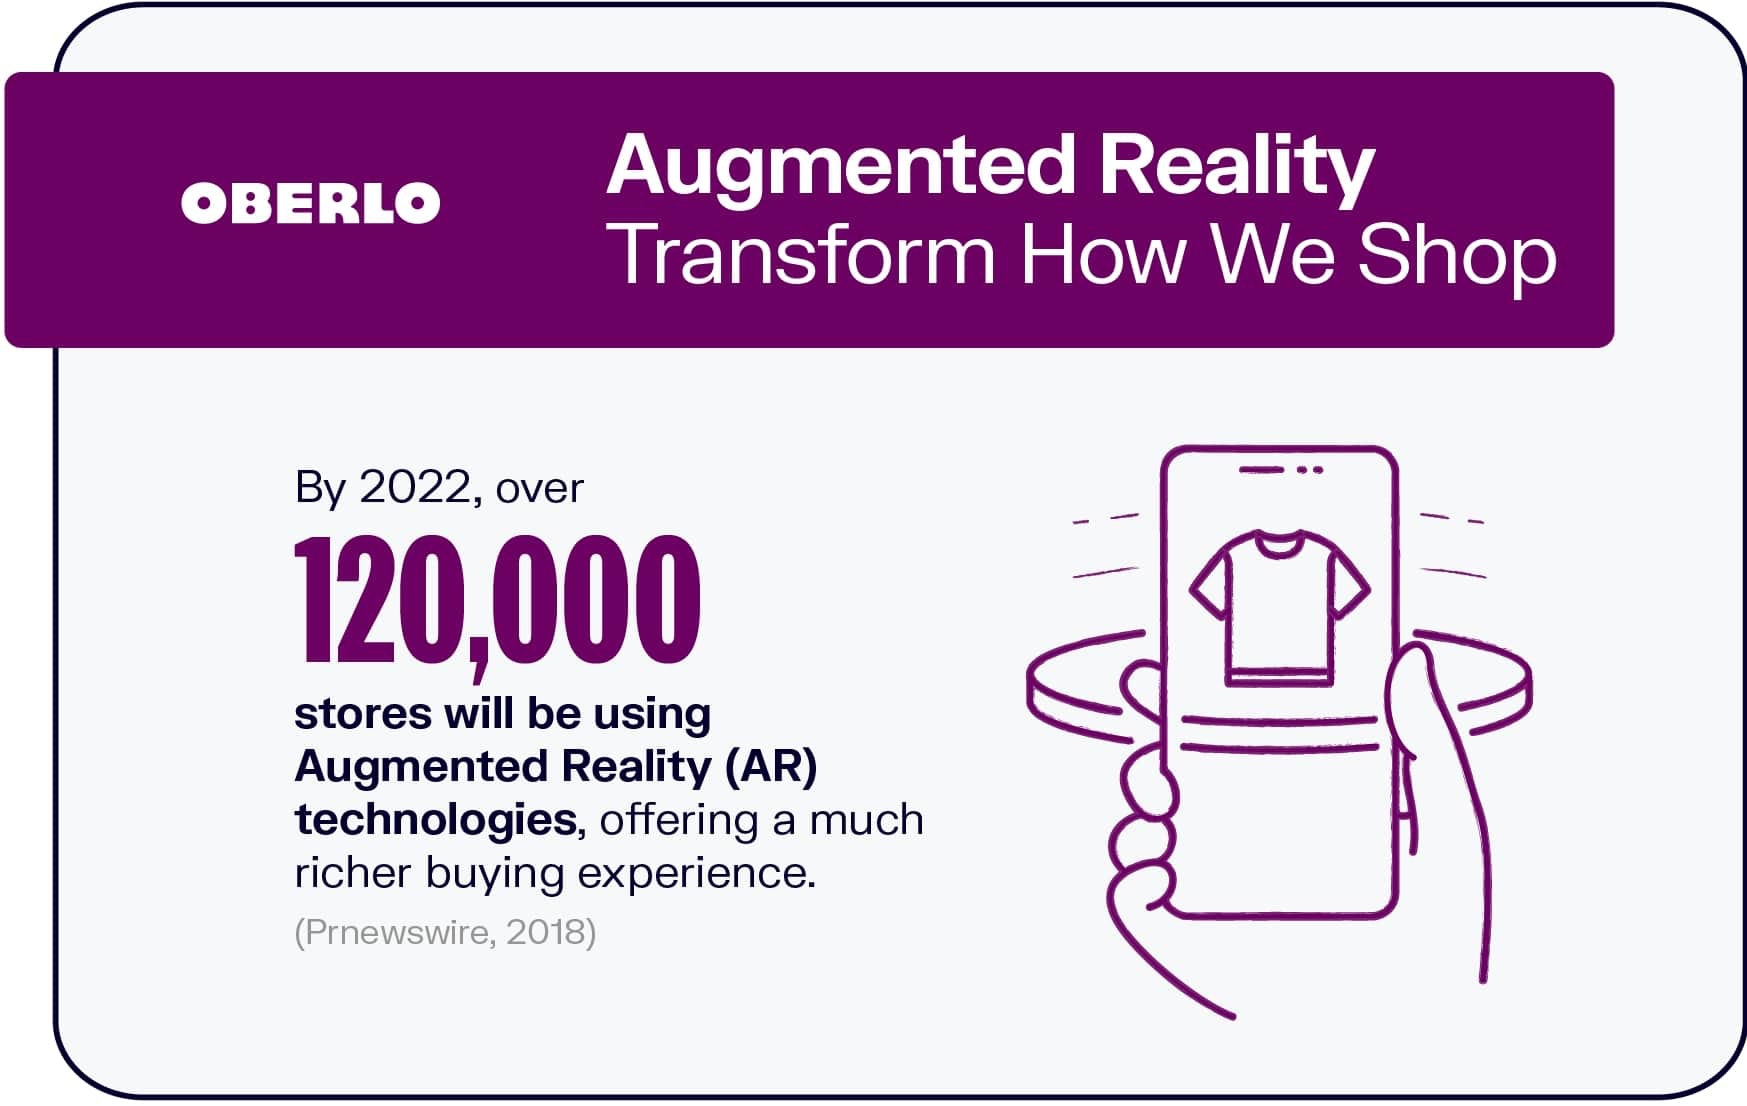 Augmented Reality Transforms How We Shop